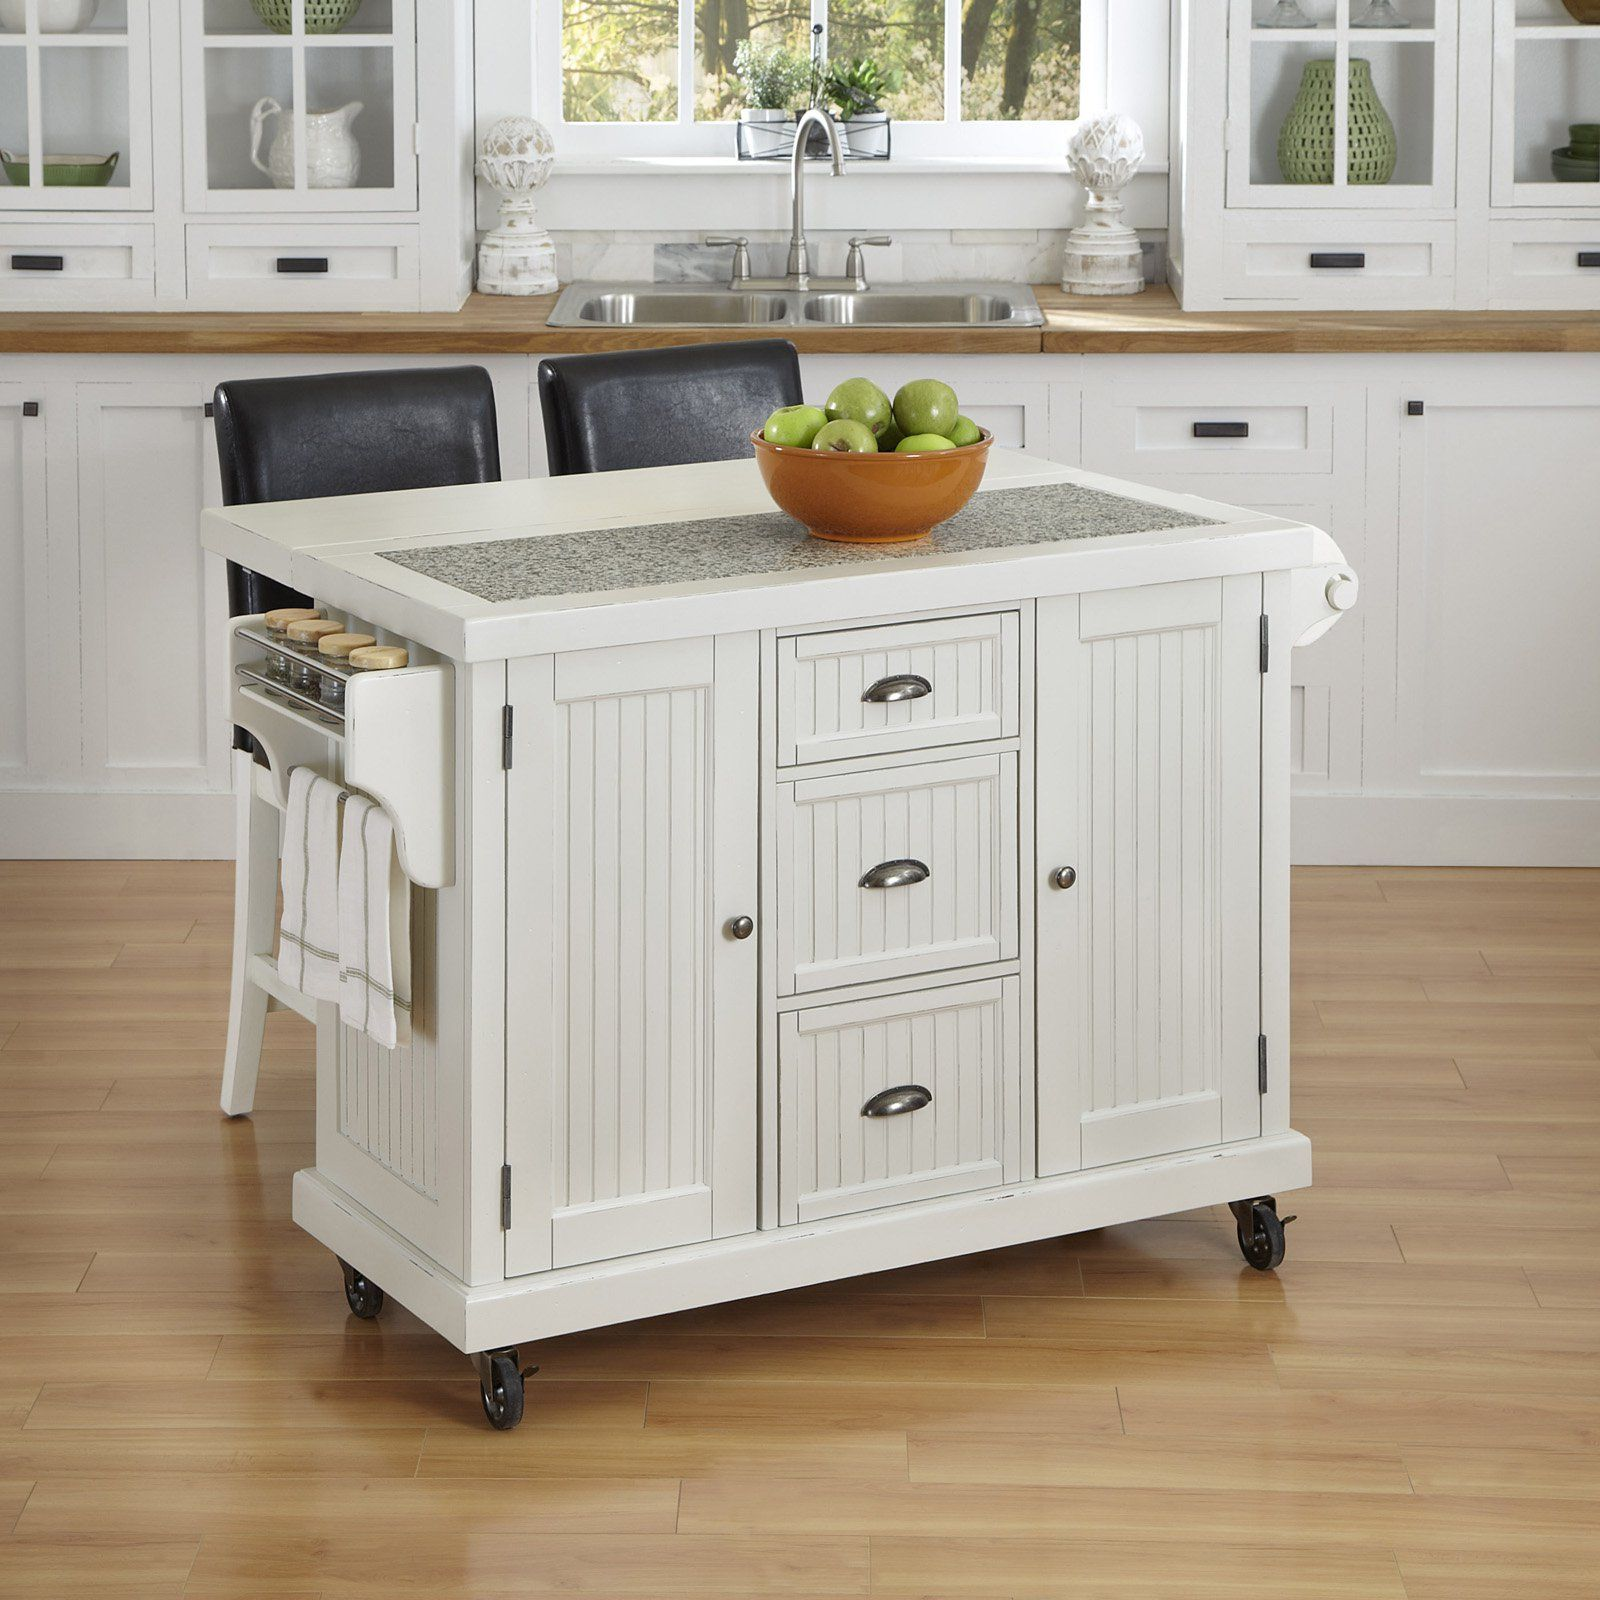 Have To Have It Home Styles Nantucket Distressed White 3 Piece Kitchen Cart And Two Stools Set 991 19 Distressed Kitchen White Kitchen Cart Kitchen Trends